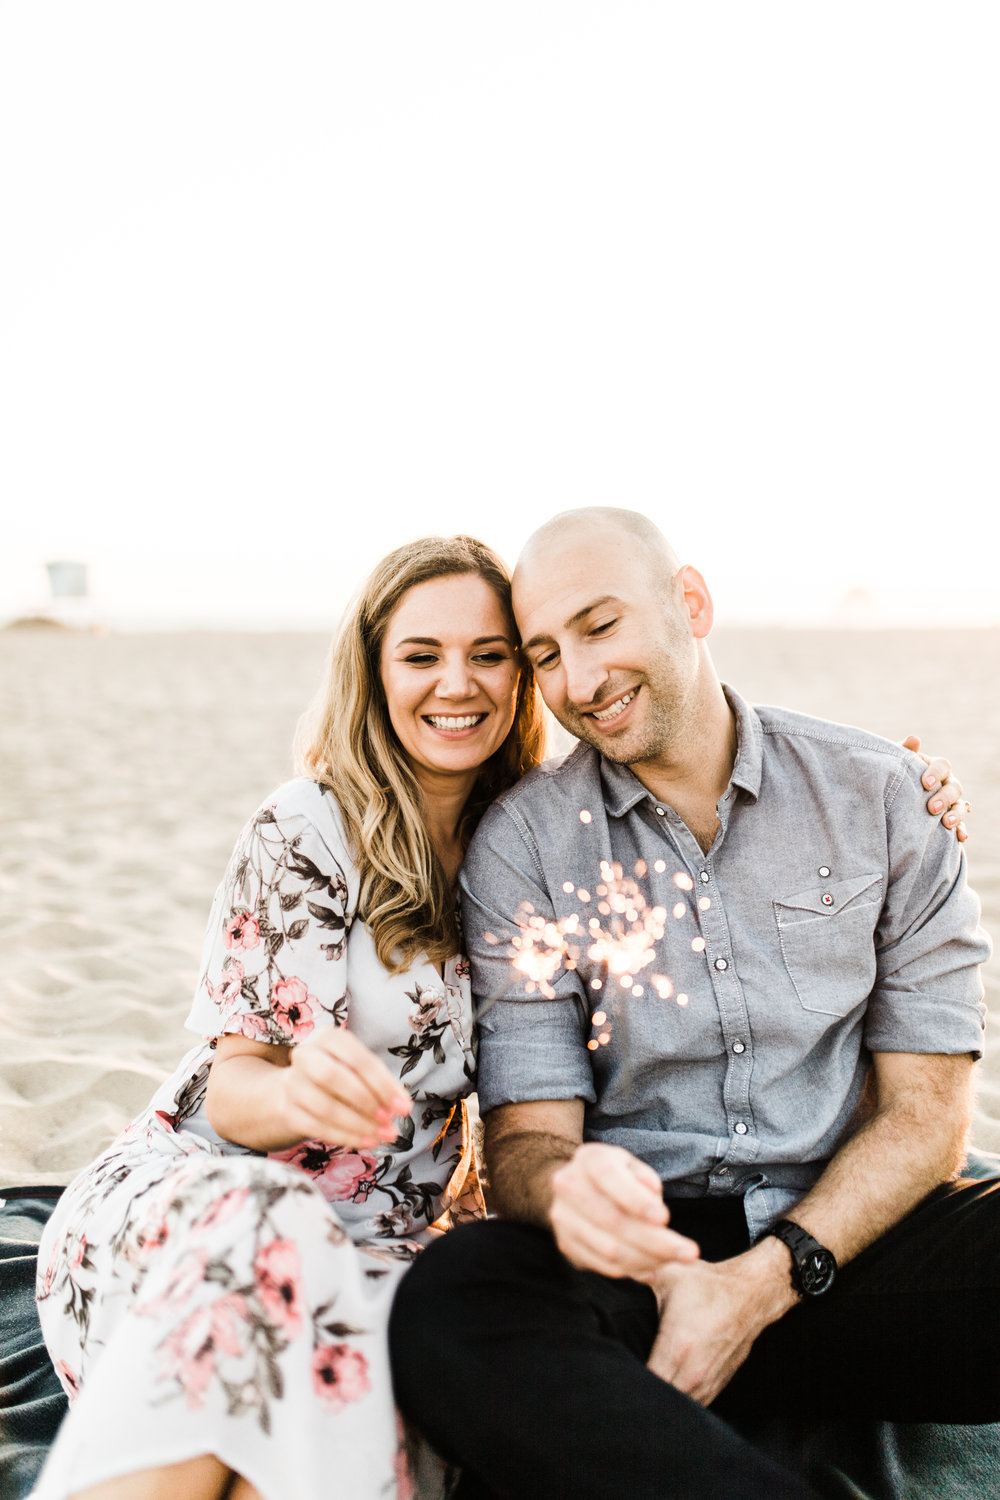 Koleta&Greg-Pacific-City-Huntington-Beach-Engagement-Photos-Clarisse-Rae-Southern-California-Wedding-Photographer_51